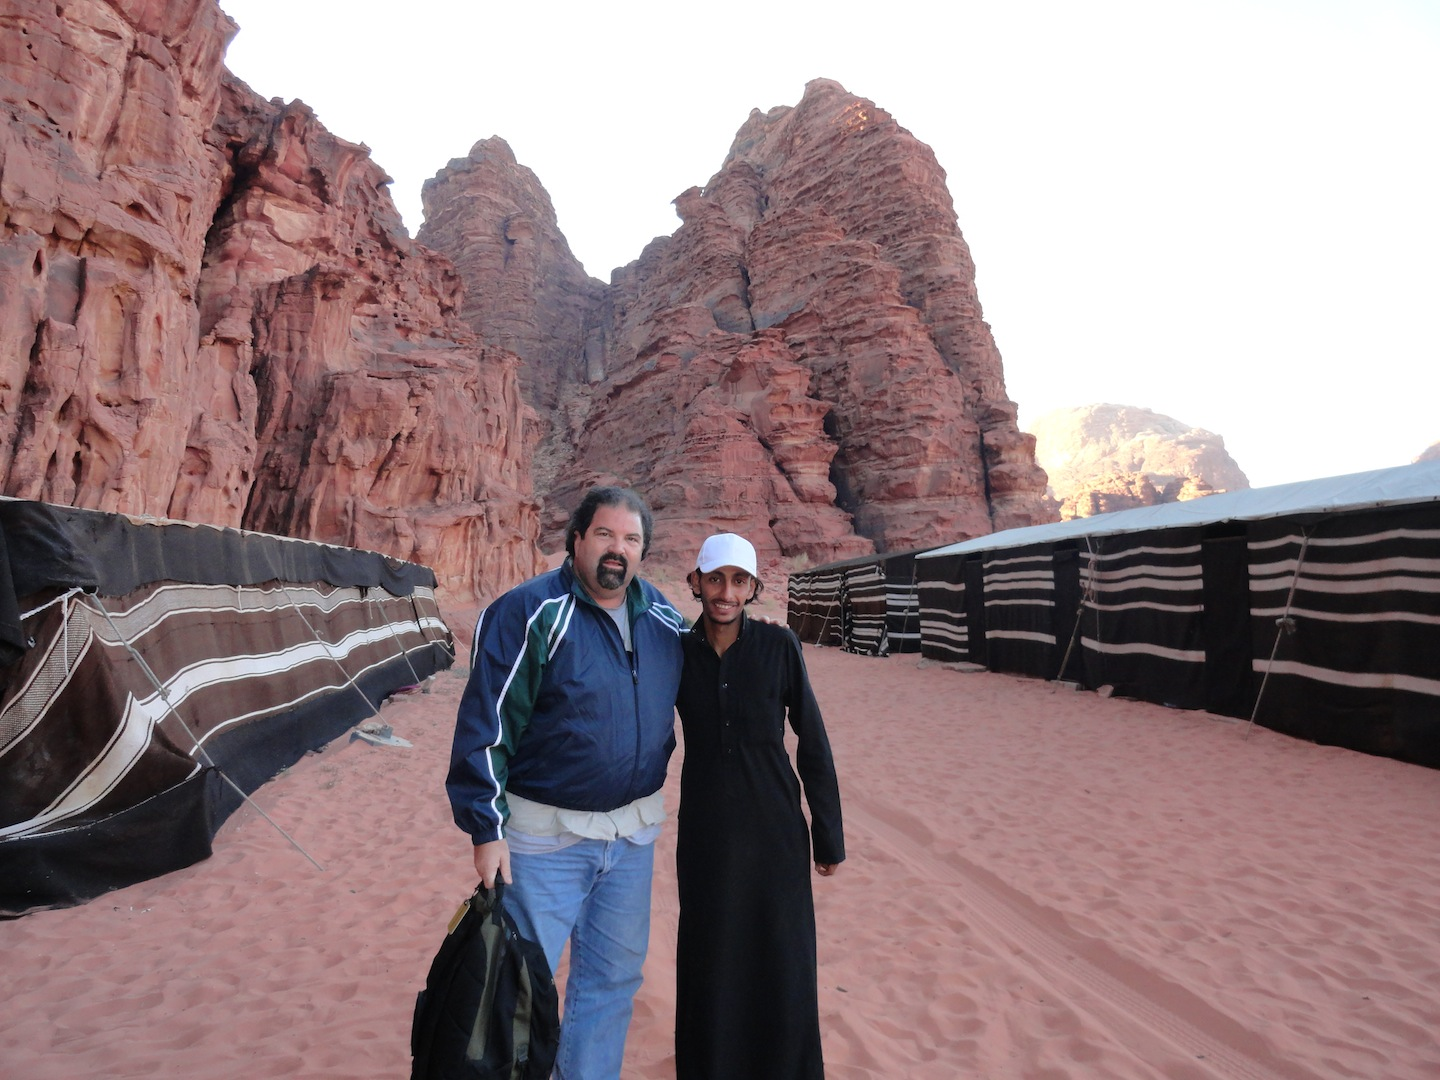 Randy and Muhammed in the desert at Wadi Rum